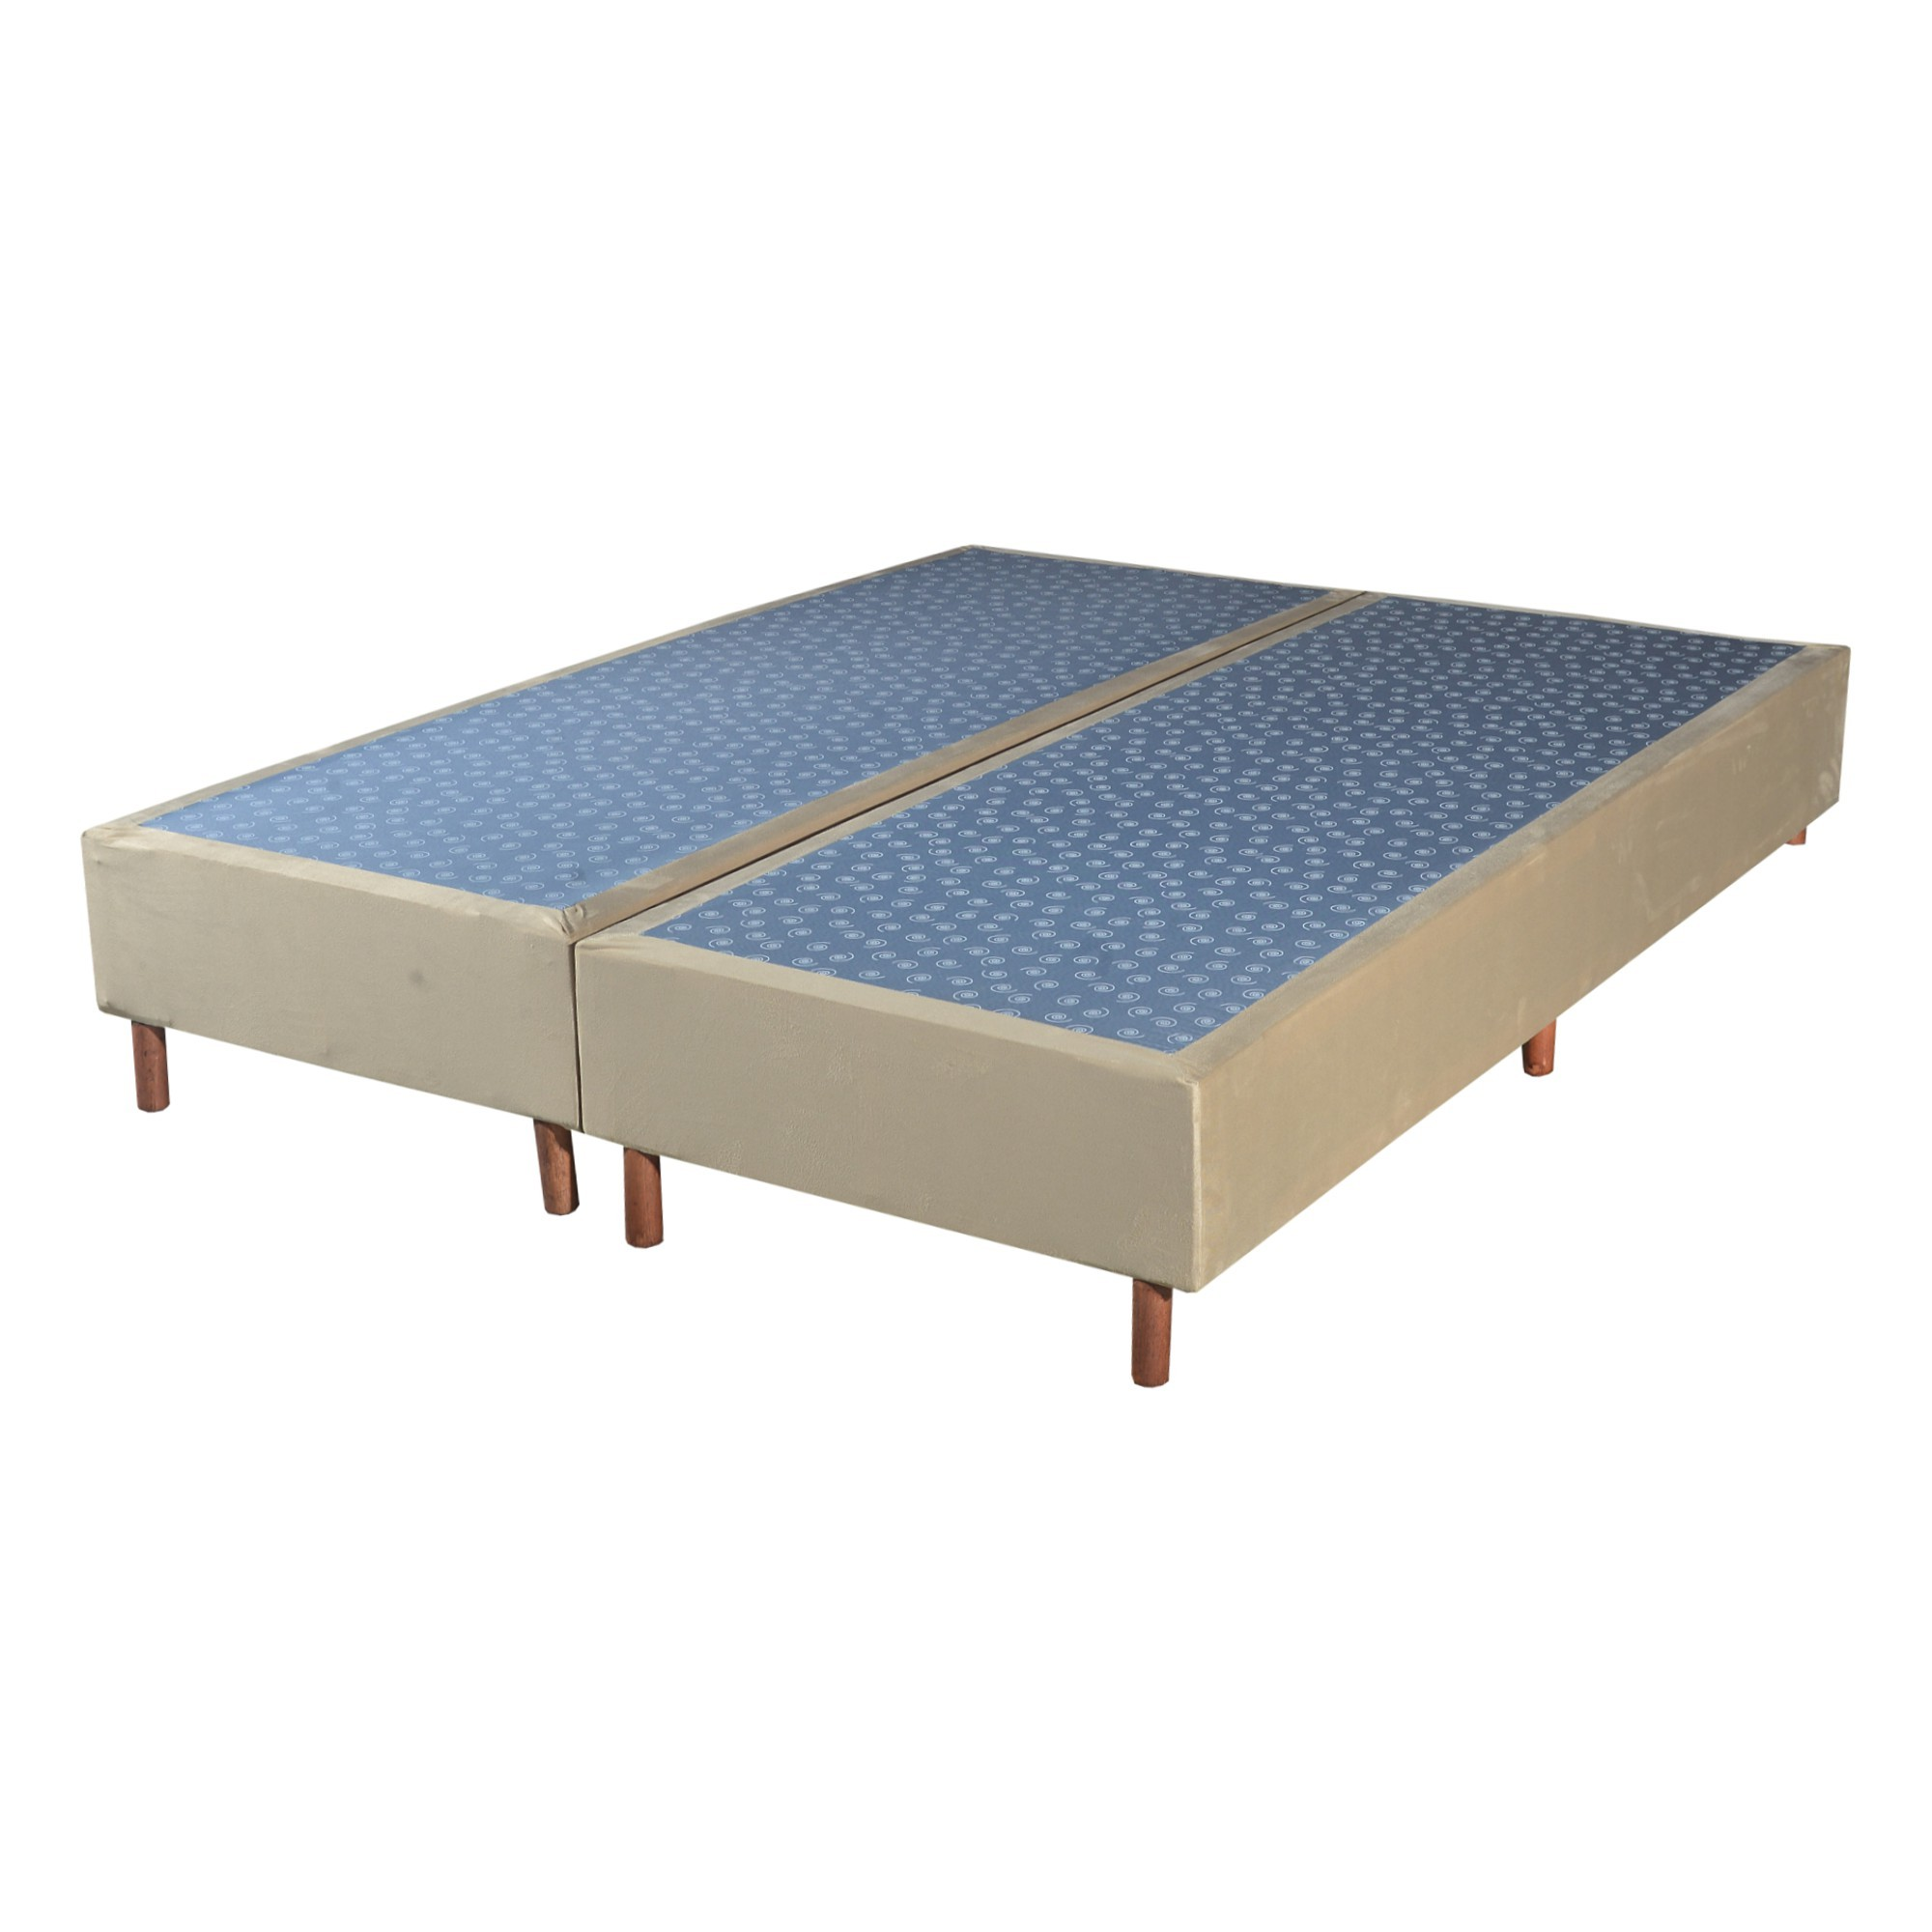 Cama Box Base Queen Veludo Bege 158x198x25